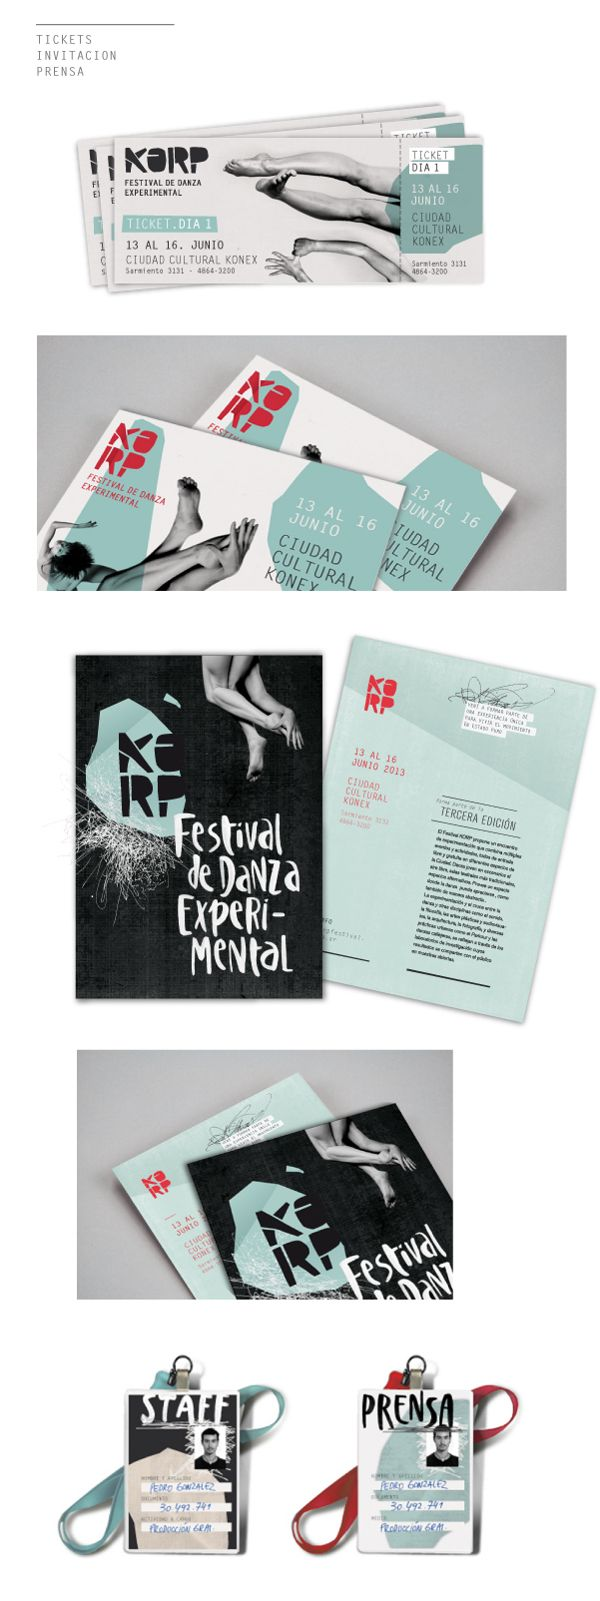 KORP. Festival de Danza Experimental - Parte I by Julia Moscardini, via Behance